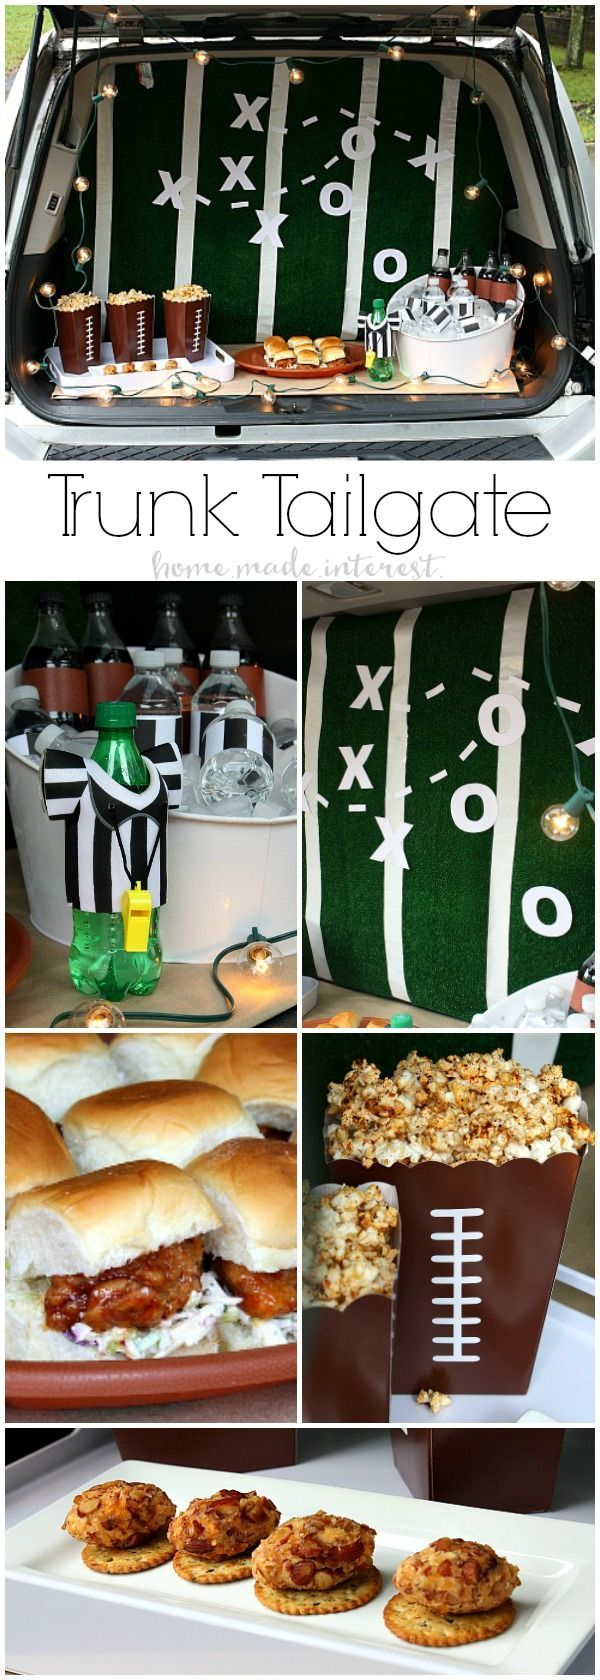 AD: I love tailgating during football season and setting up a fun and easy Trunk Tailgating party is always a good time. I decorate my trunk for game day and serve game day appetizers like honey bbq sliders, bacon cheese balls, and bbq popcorn! My tailgate party tutorial is full of easy game day party or tailgate recipes and ideas. #GameTimeHero